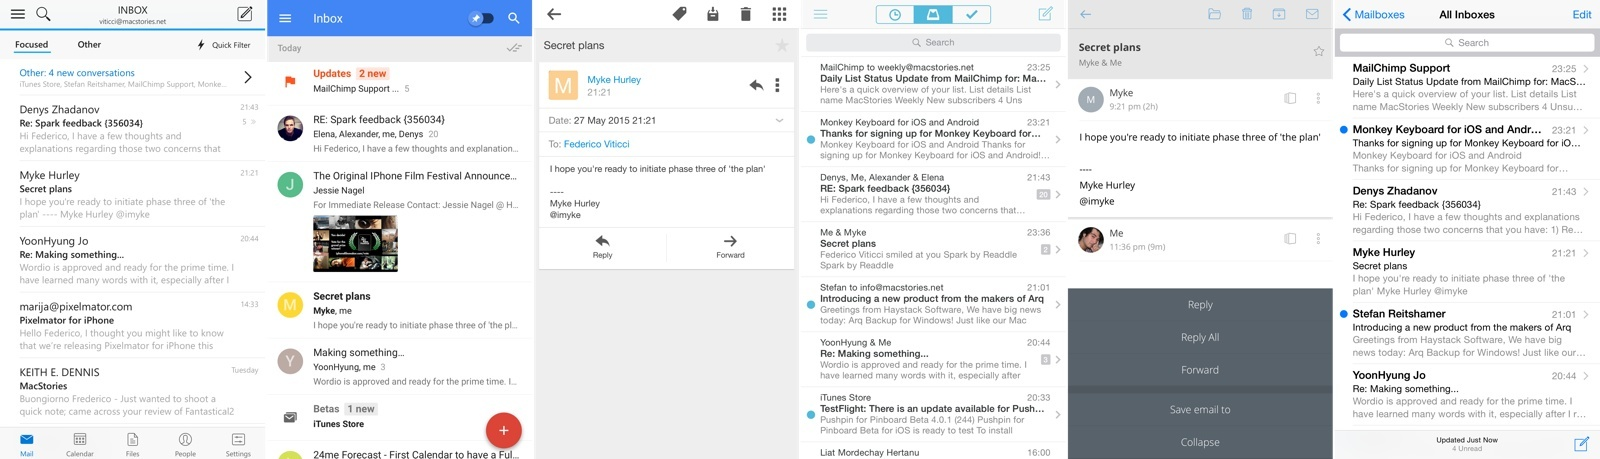 Modern email apps, and Apple Mail. (Open image in new tab for full size.)